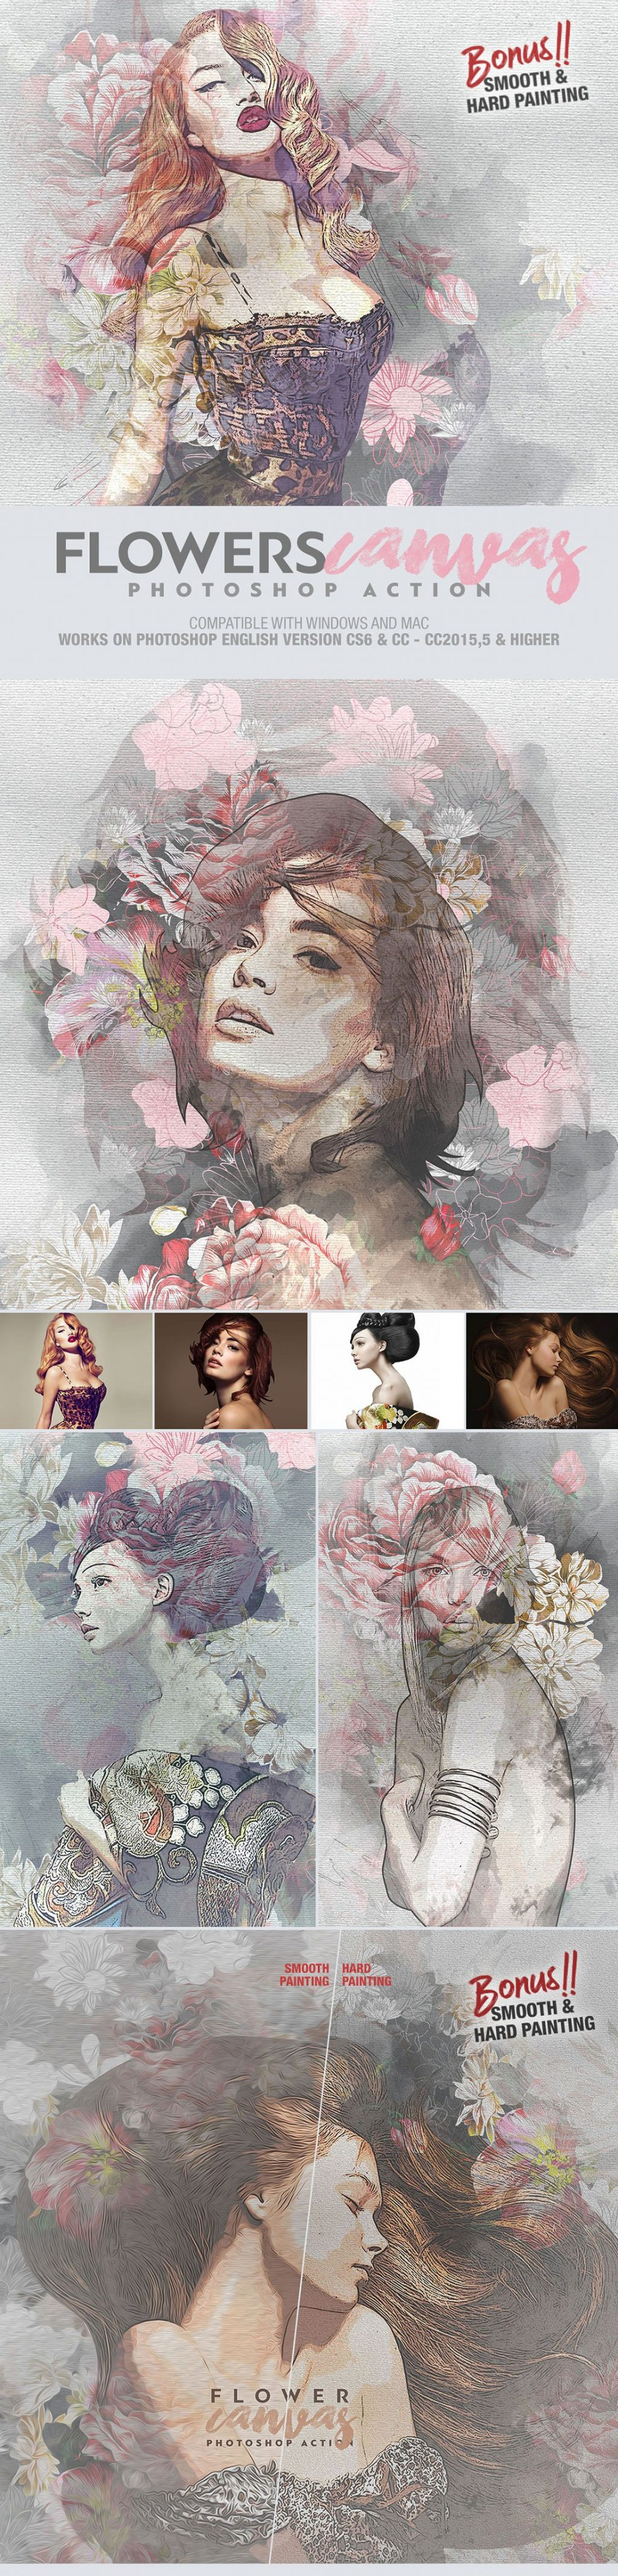 Photoshop Actions & Templates: Artistic Photo FX Bundle - flower canvas photoshop action design by amorjesu